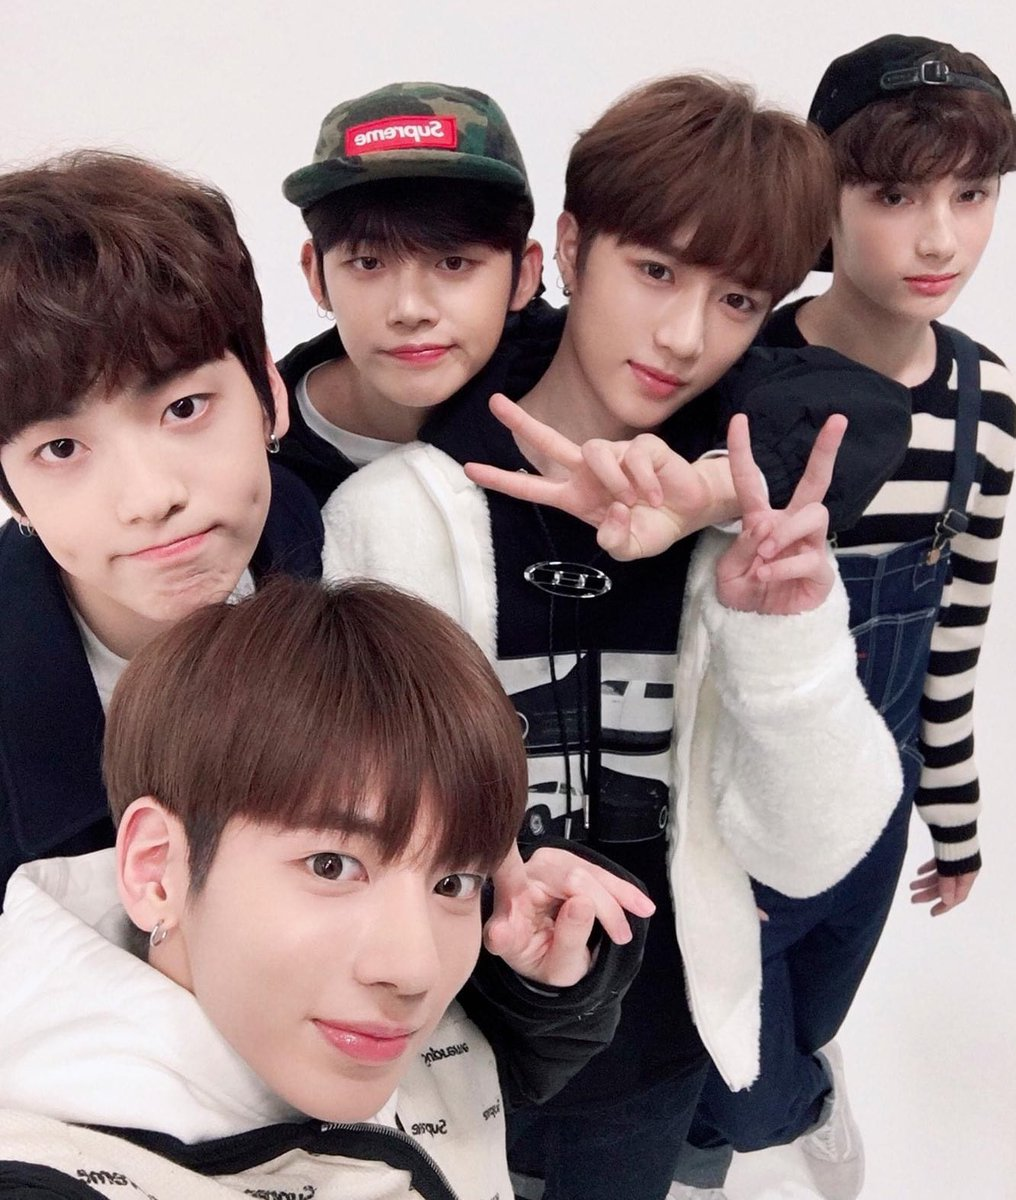 It's been 2 years since you guys debuted and 2 years since i stan/love you guys 🥺💙. Let's stay together forever 🥺💙  #TXT @TXT_members   #2MagicalYearsWithTXT #소중한_봄의_추억_데뷔_2주년  #TOMORROW_X_TOGETHER   #투모로우바이투게더